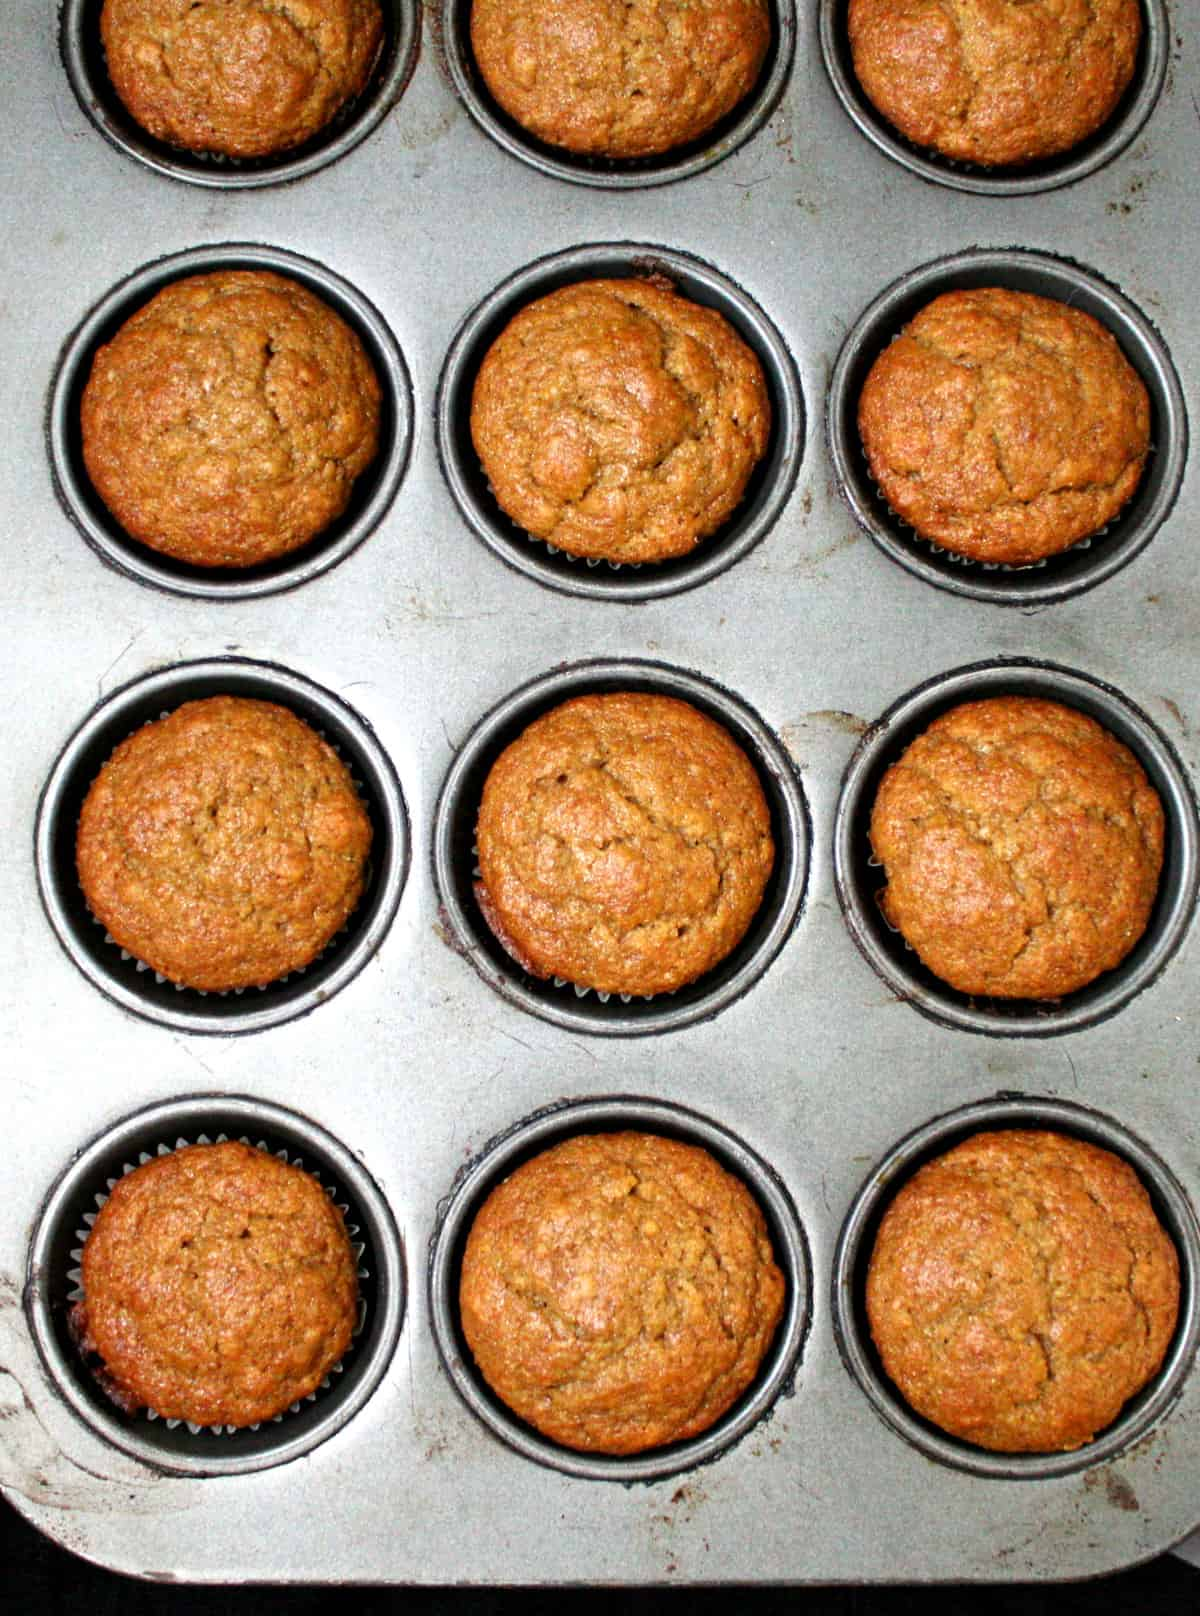 Vegan Banana Muffins in the muffin tin, fresh out of the oven.